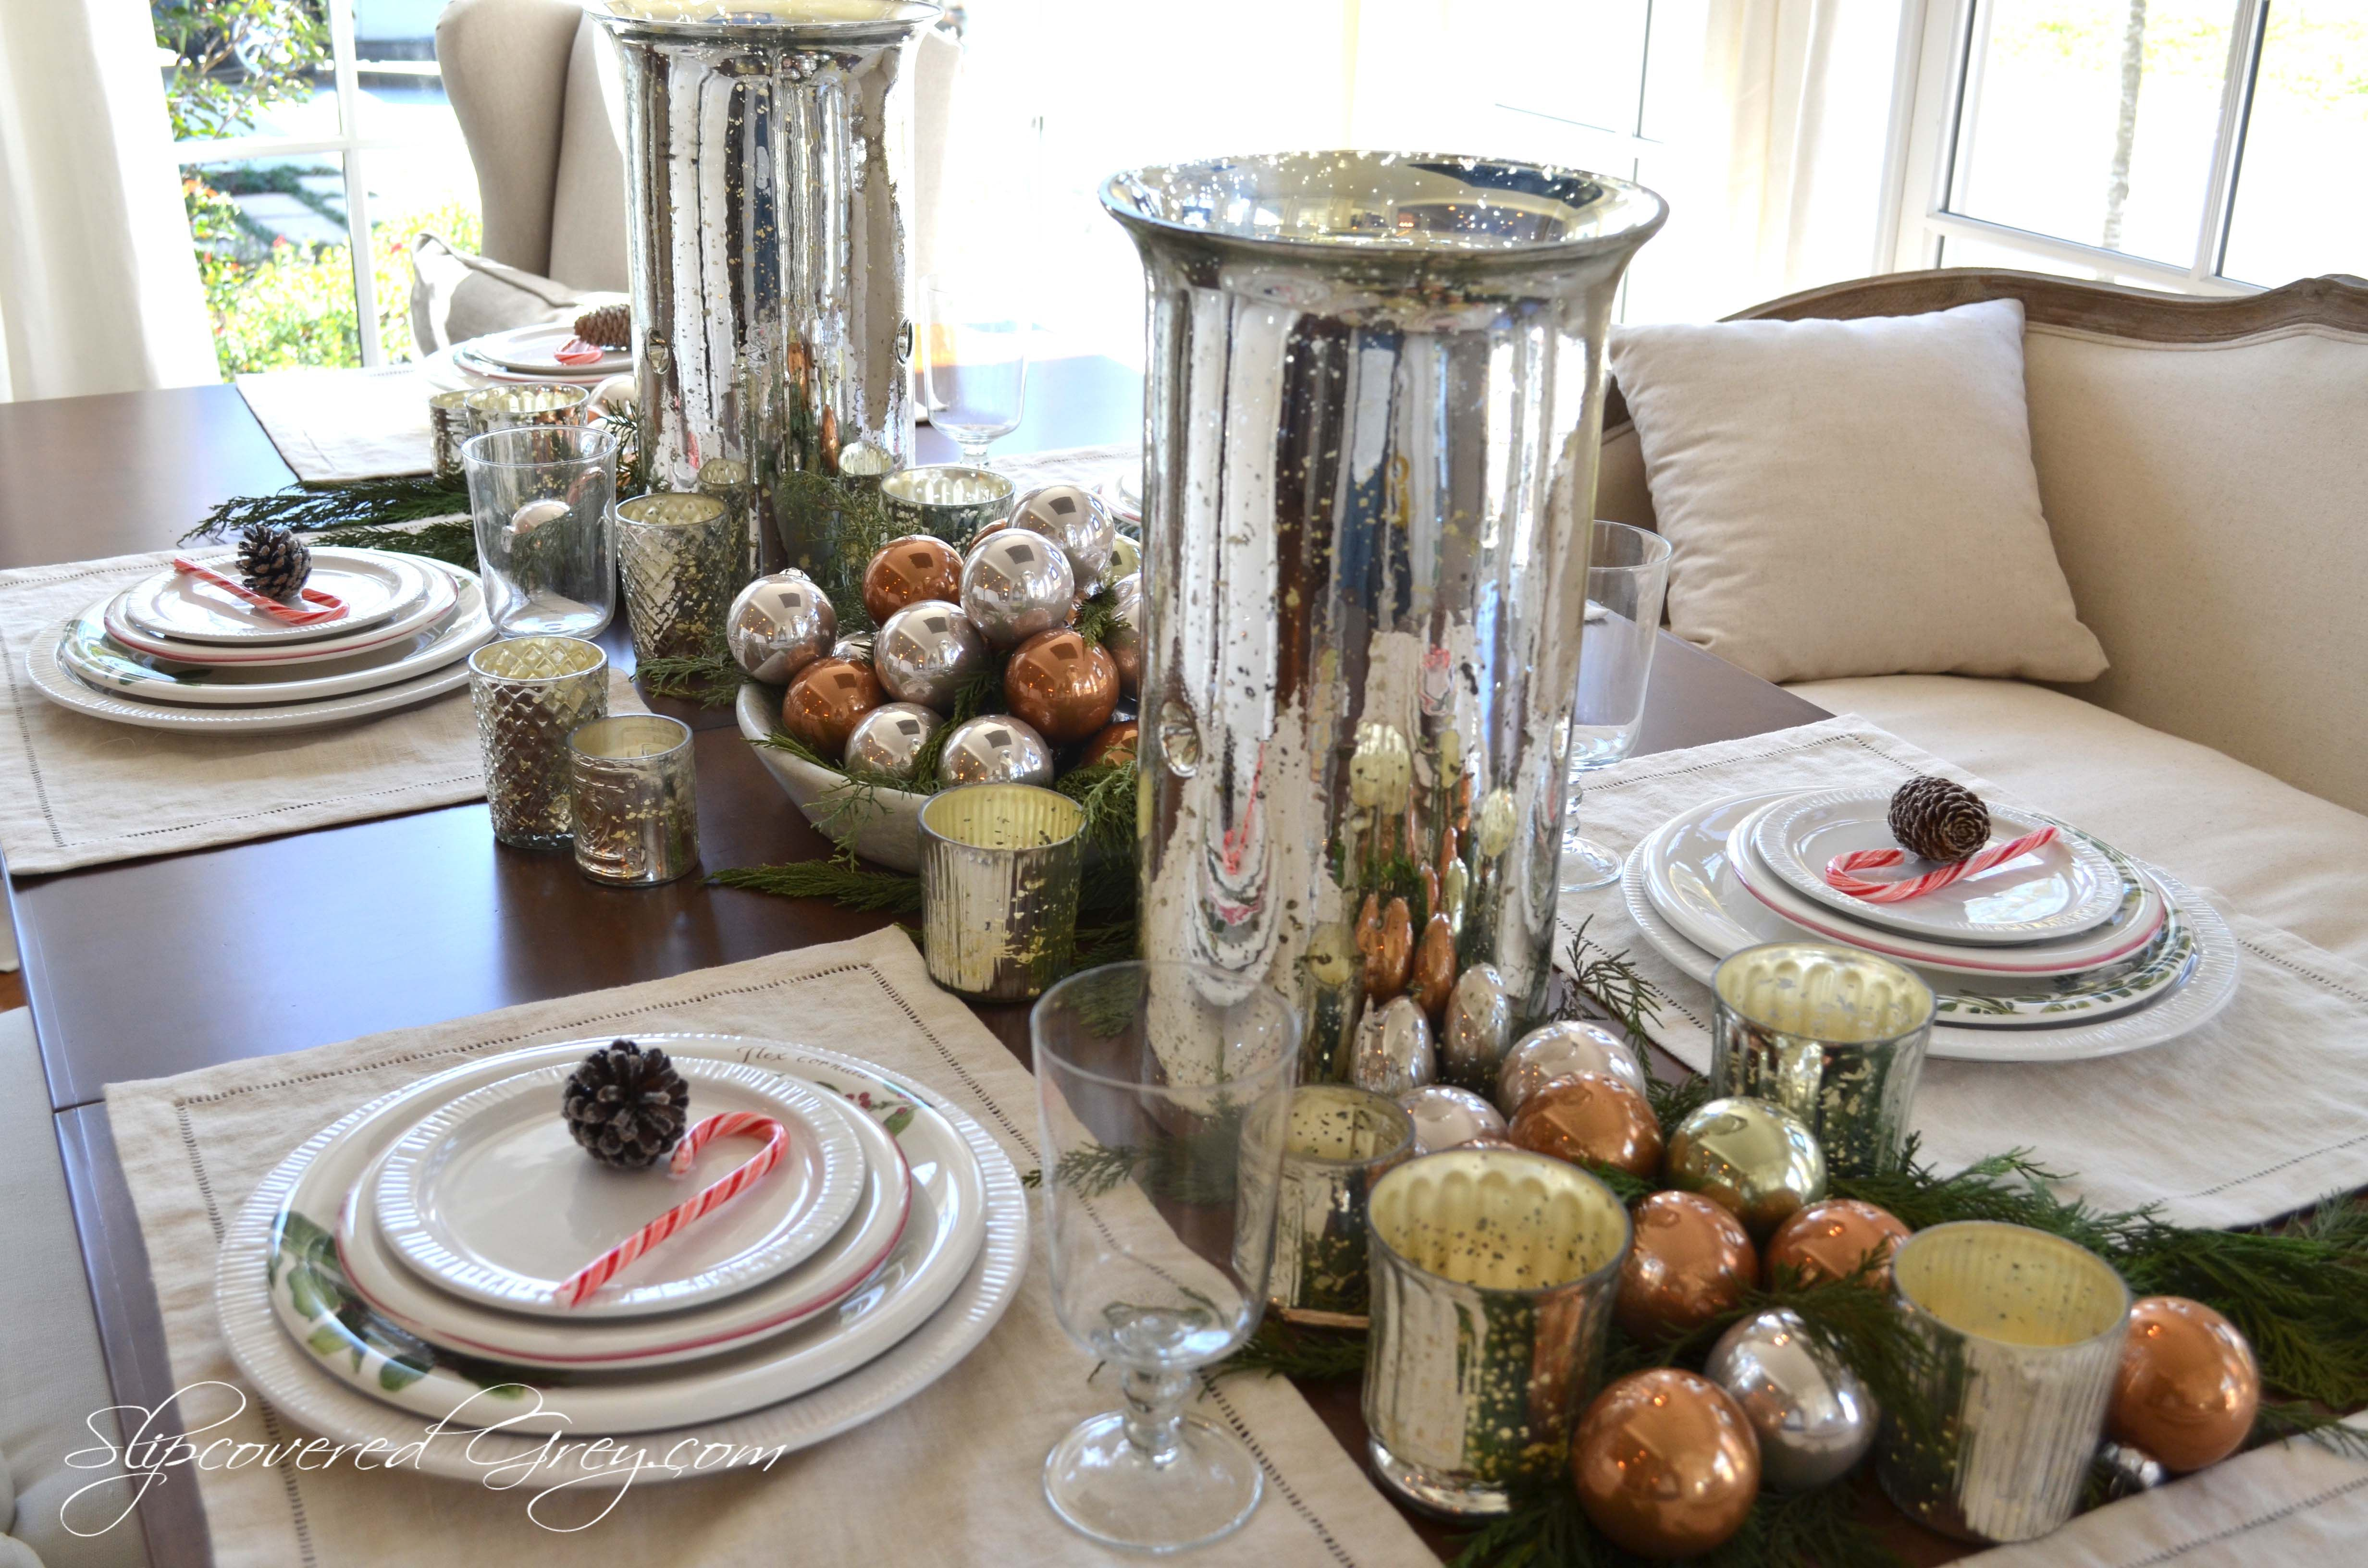 Setting a christmas table ideas - 17 Best Images About Christmas Table Decorations Ideas On Pinterest Centerpieces Gold Christmas And Christmas Wedding Centerpieces